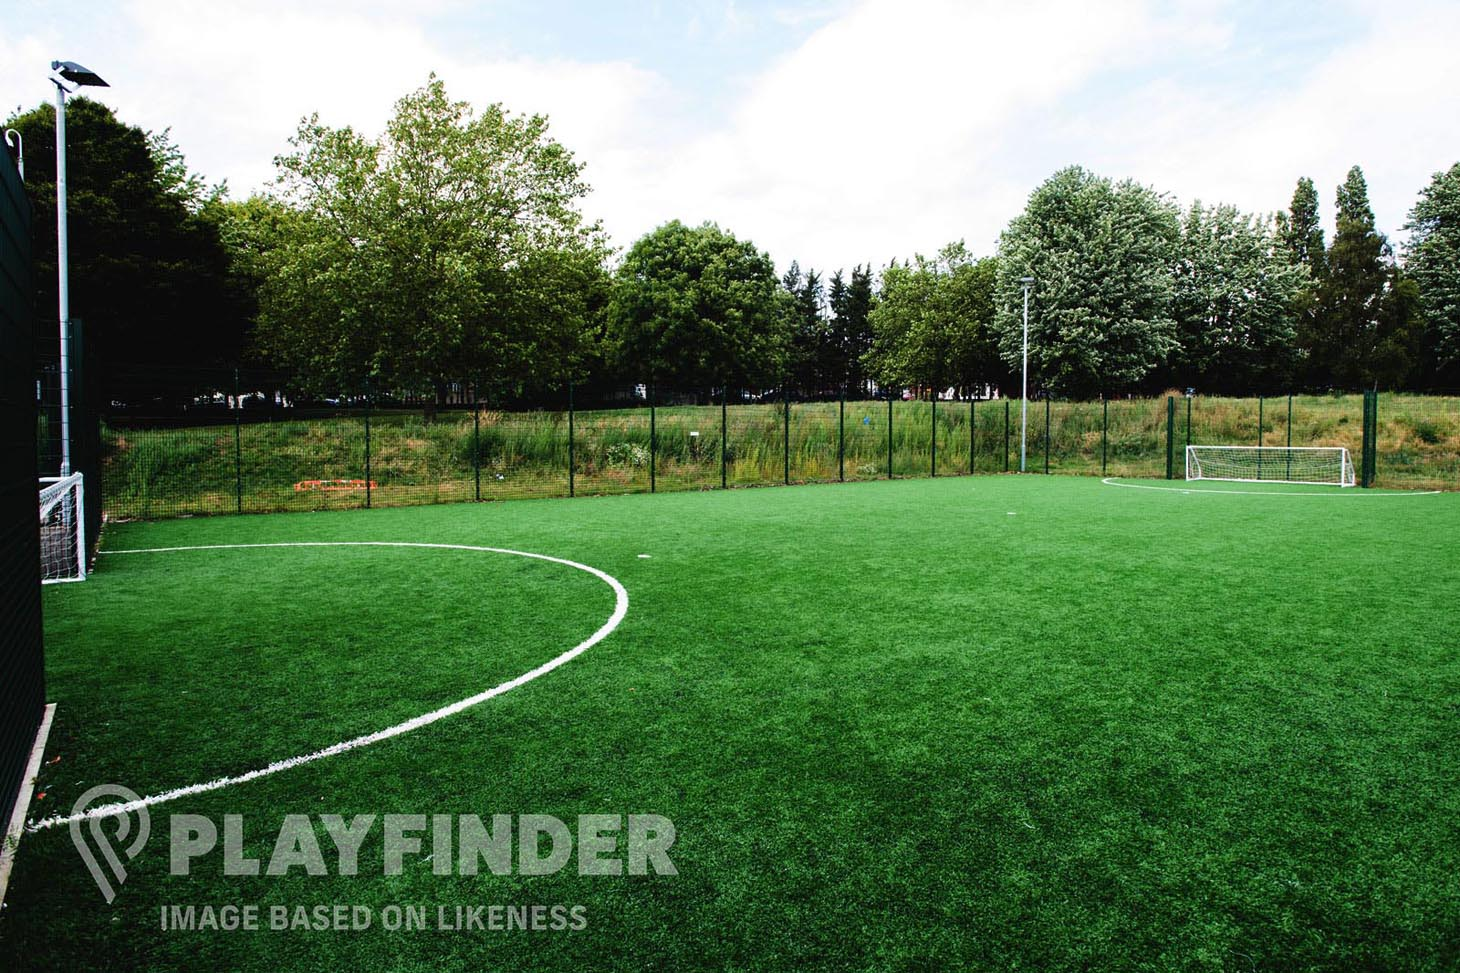 Goals Sunderland 5 a side | 3G Astroturf football pitch